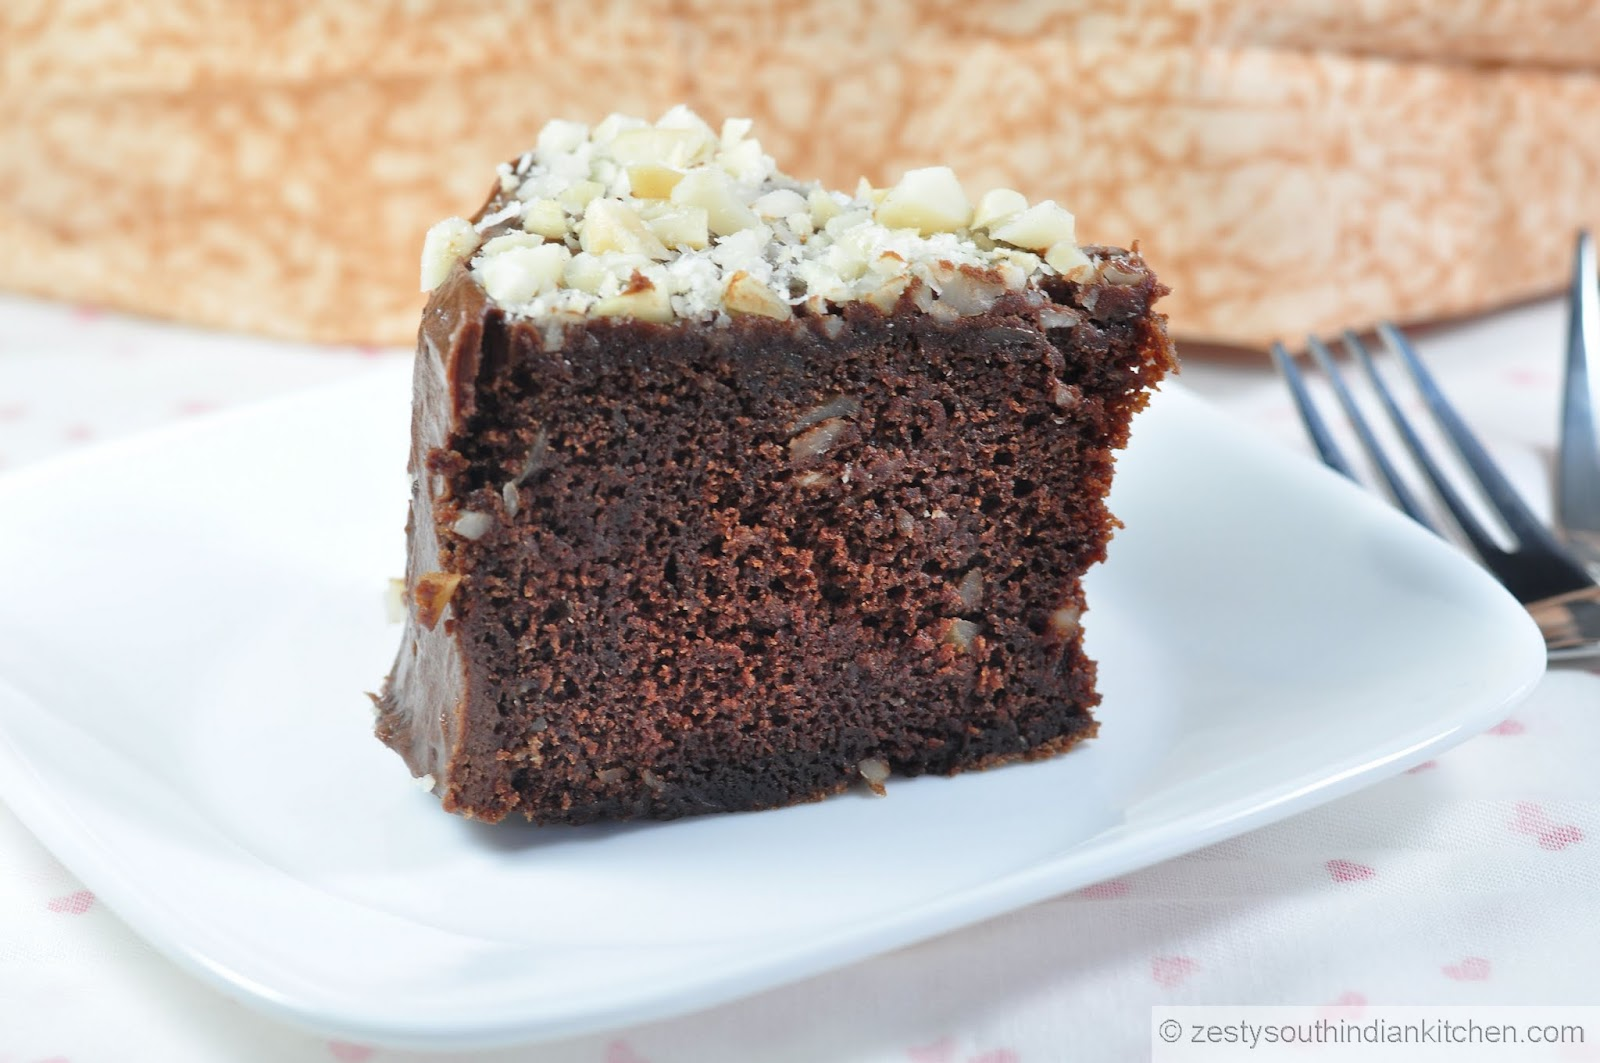 Chocolate Cake Recipe In Kannada: Trololo Blogg: Kawasaki Eliminator Wallpaper